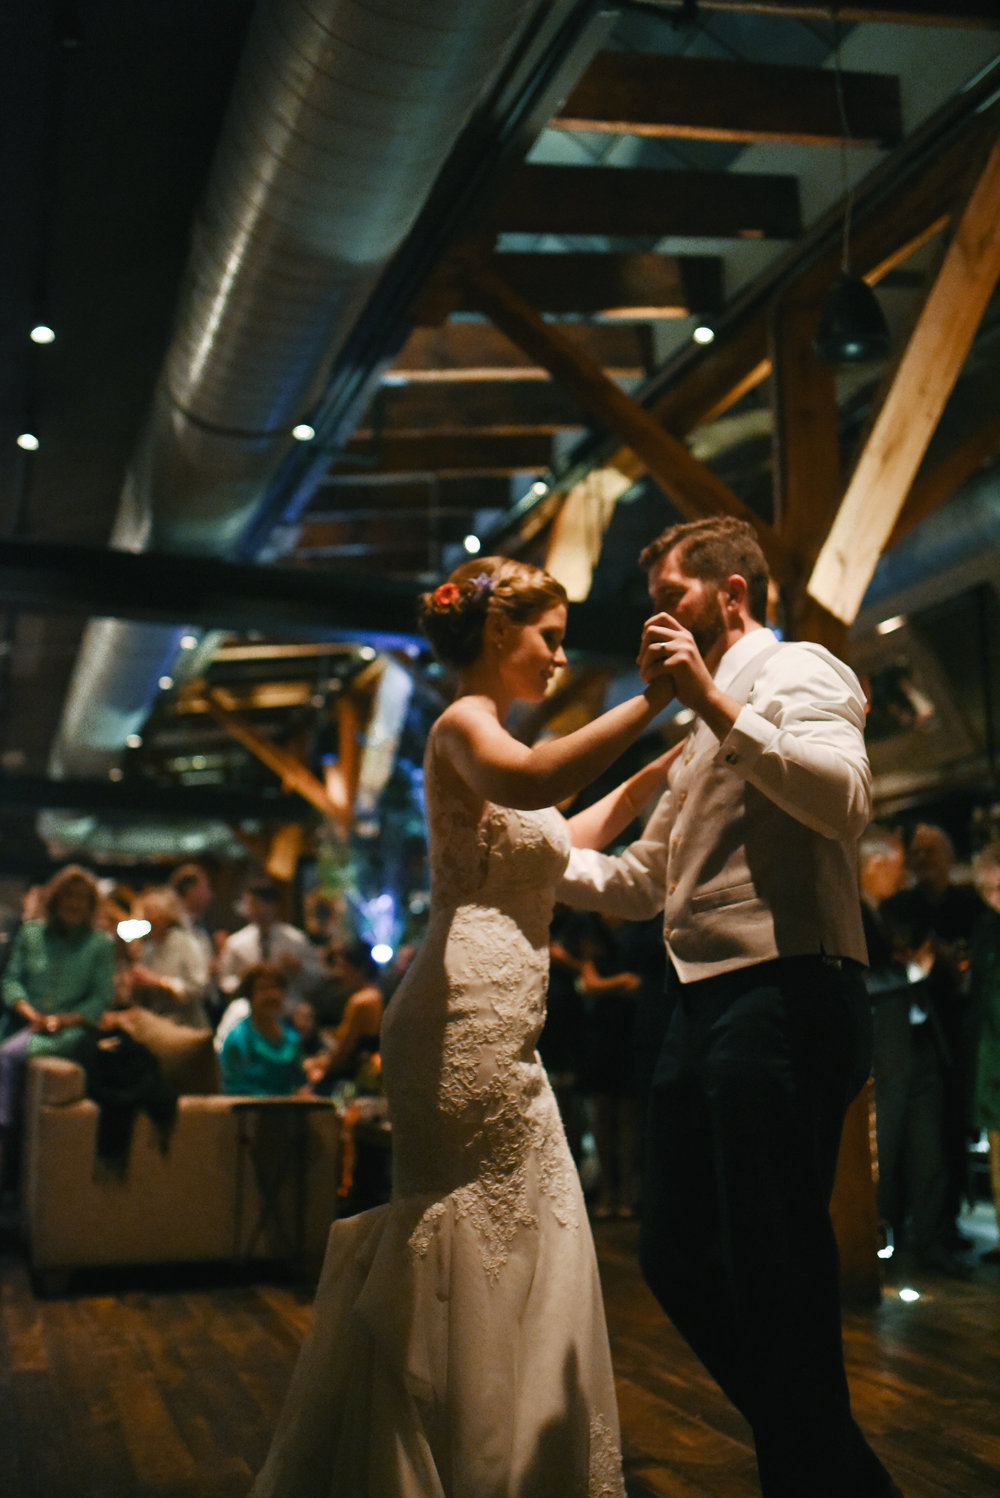 Alexandria, DC, Fall Wedding, Reception, Virtue Feed and Grain, First Dance, Rustic Wedding, Romantic, Lian Carlo Dress, Bride and Groom